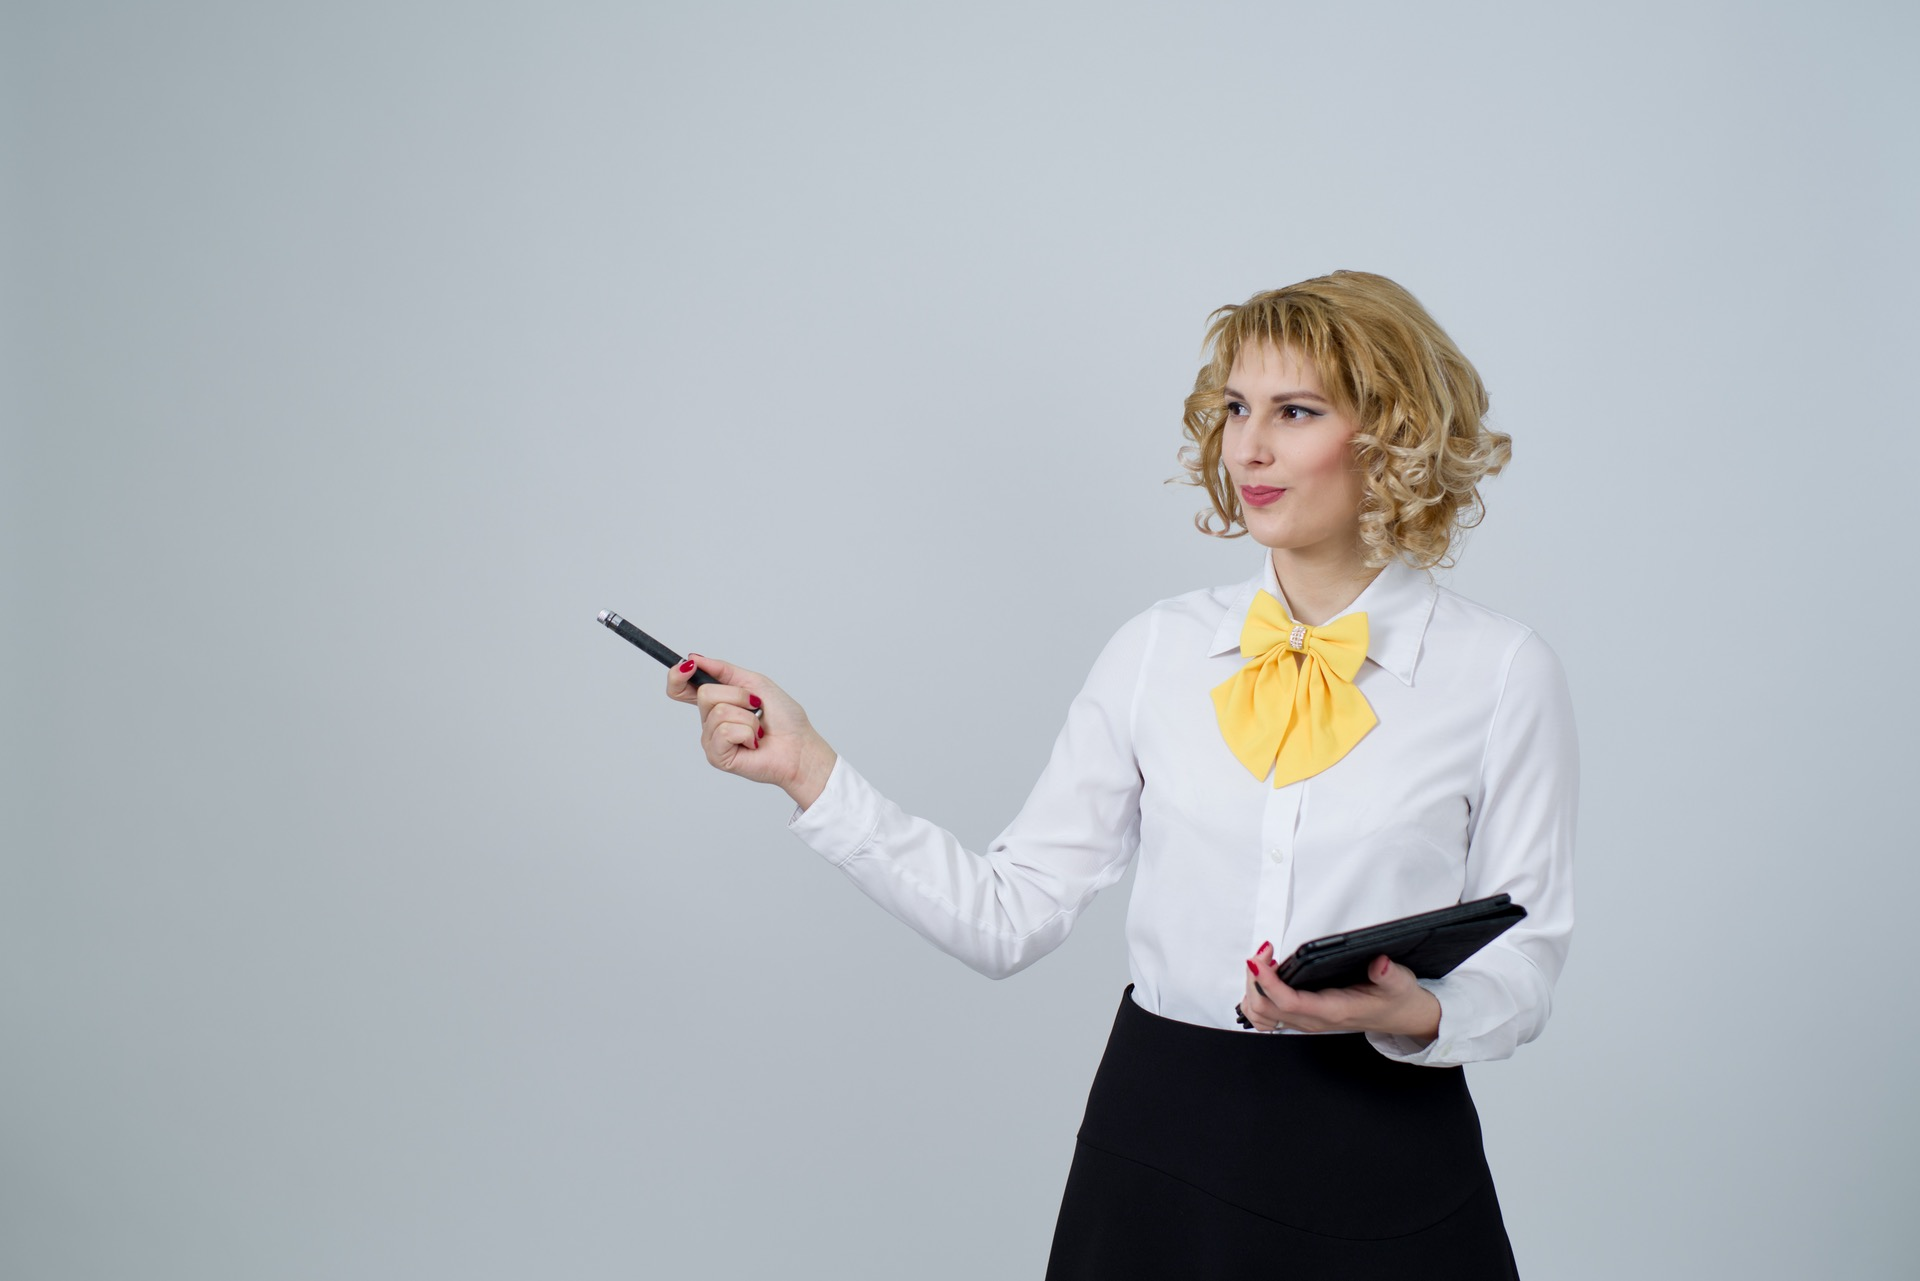 Blonde woman business pitch